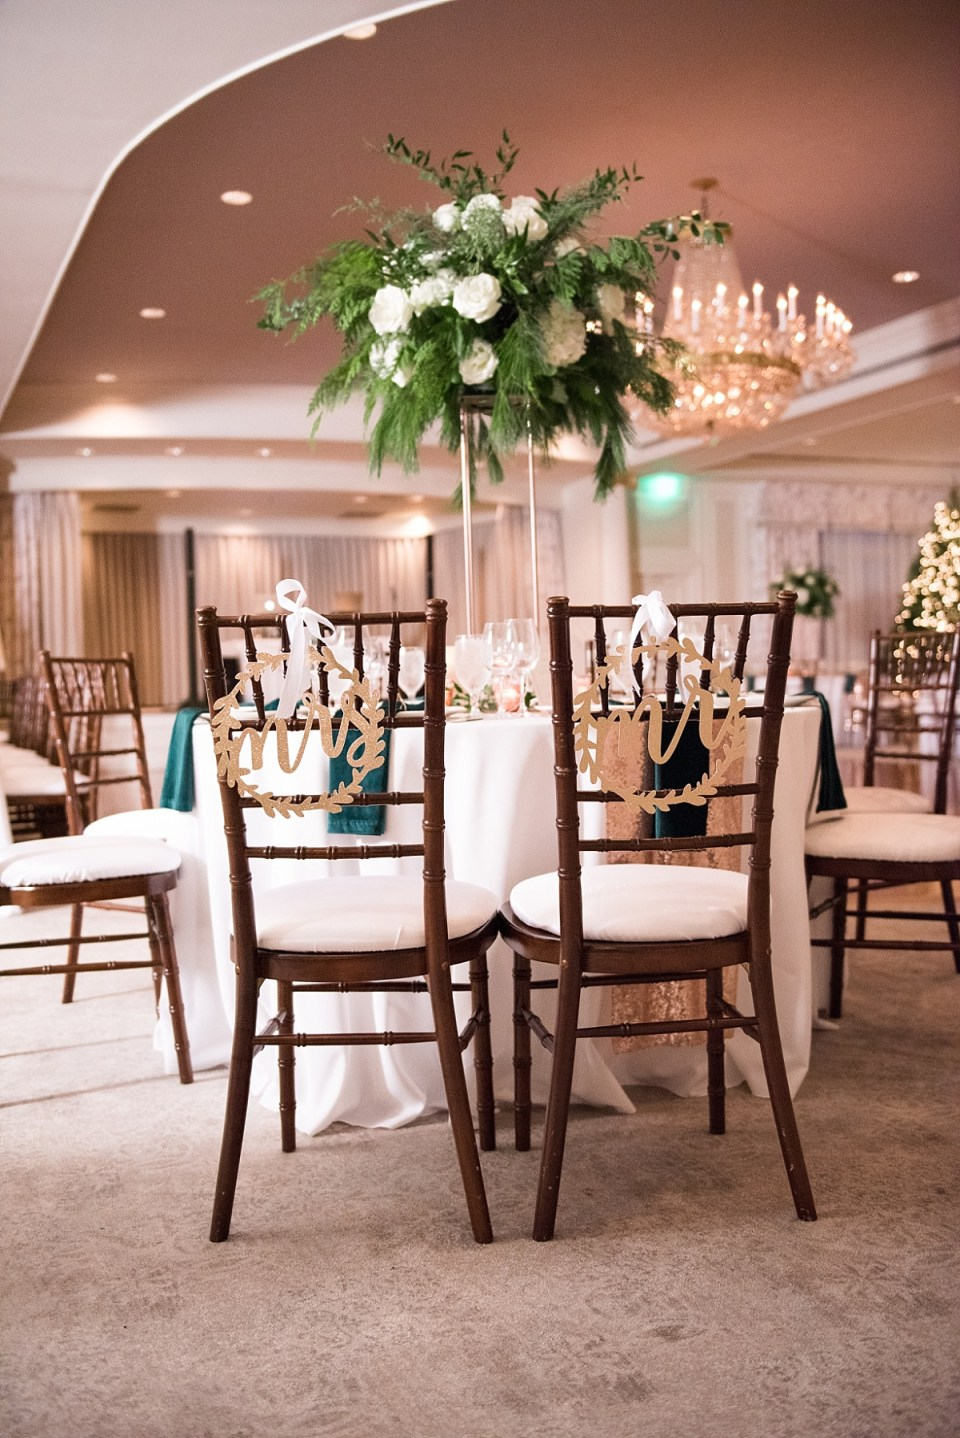 Christmas Wedding at Columbia Country Club in Chevy Chase, MD